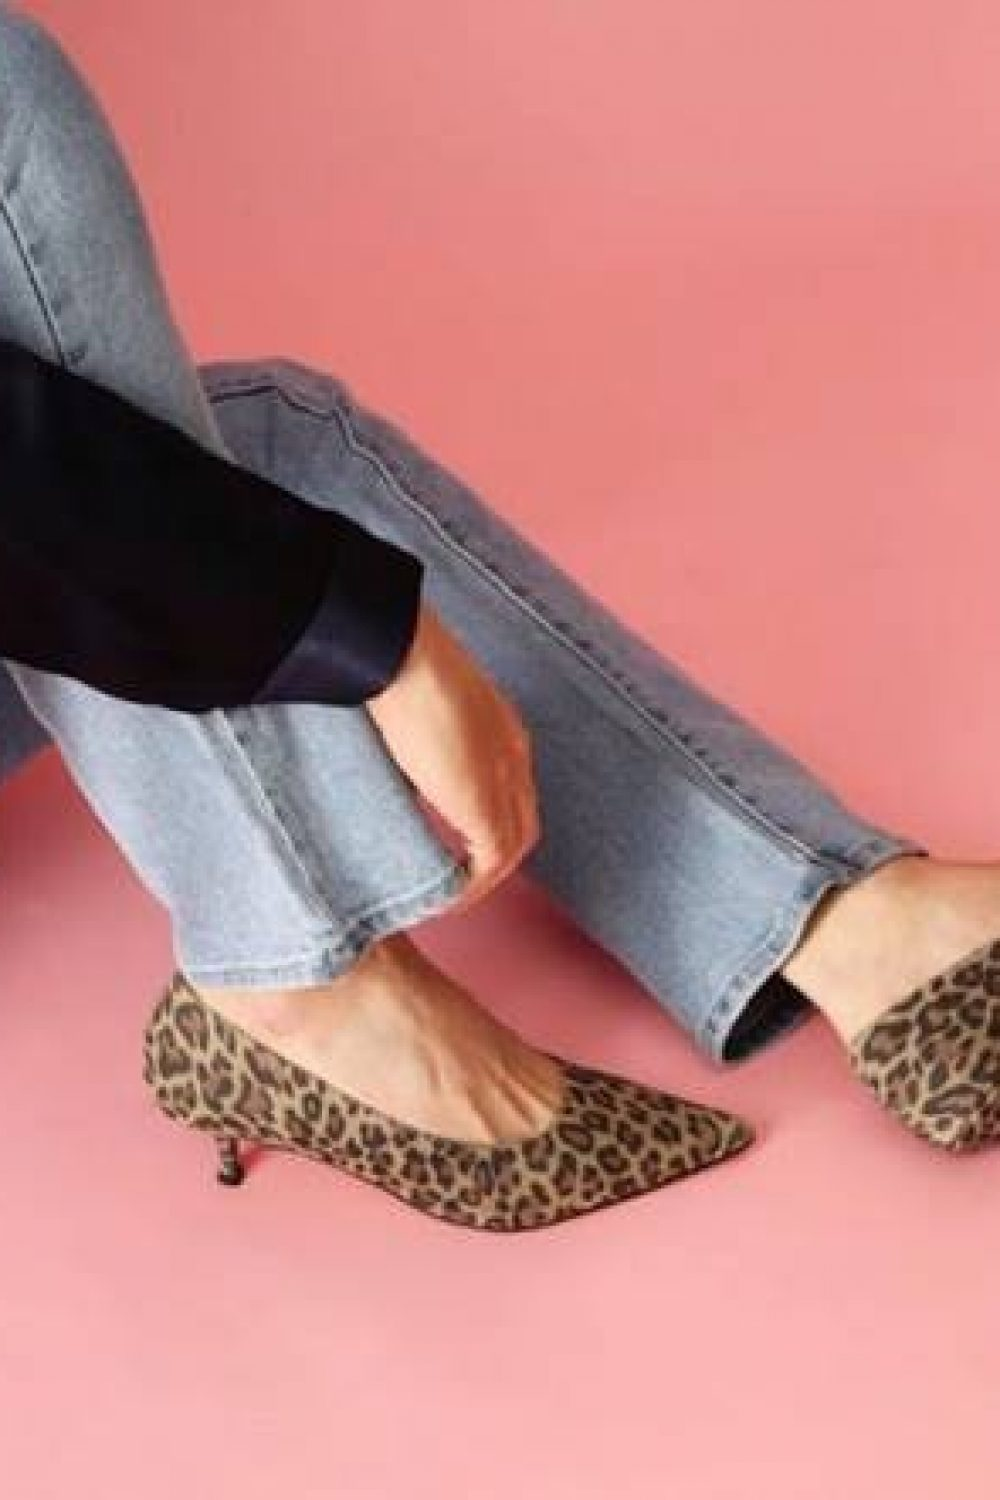 FOOTWEAR THAT'S TRENDING ACCORDING TO FASHIONISTA, LESLIE GALLIN